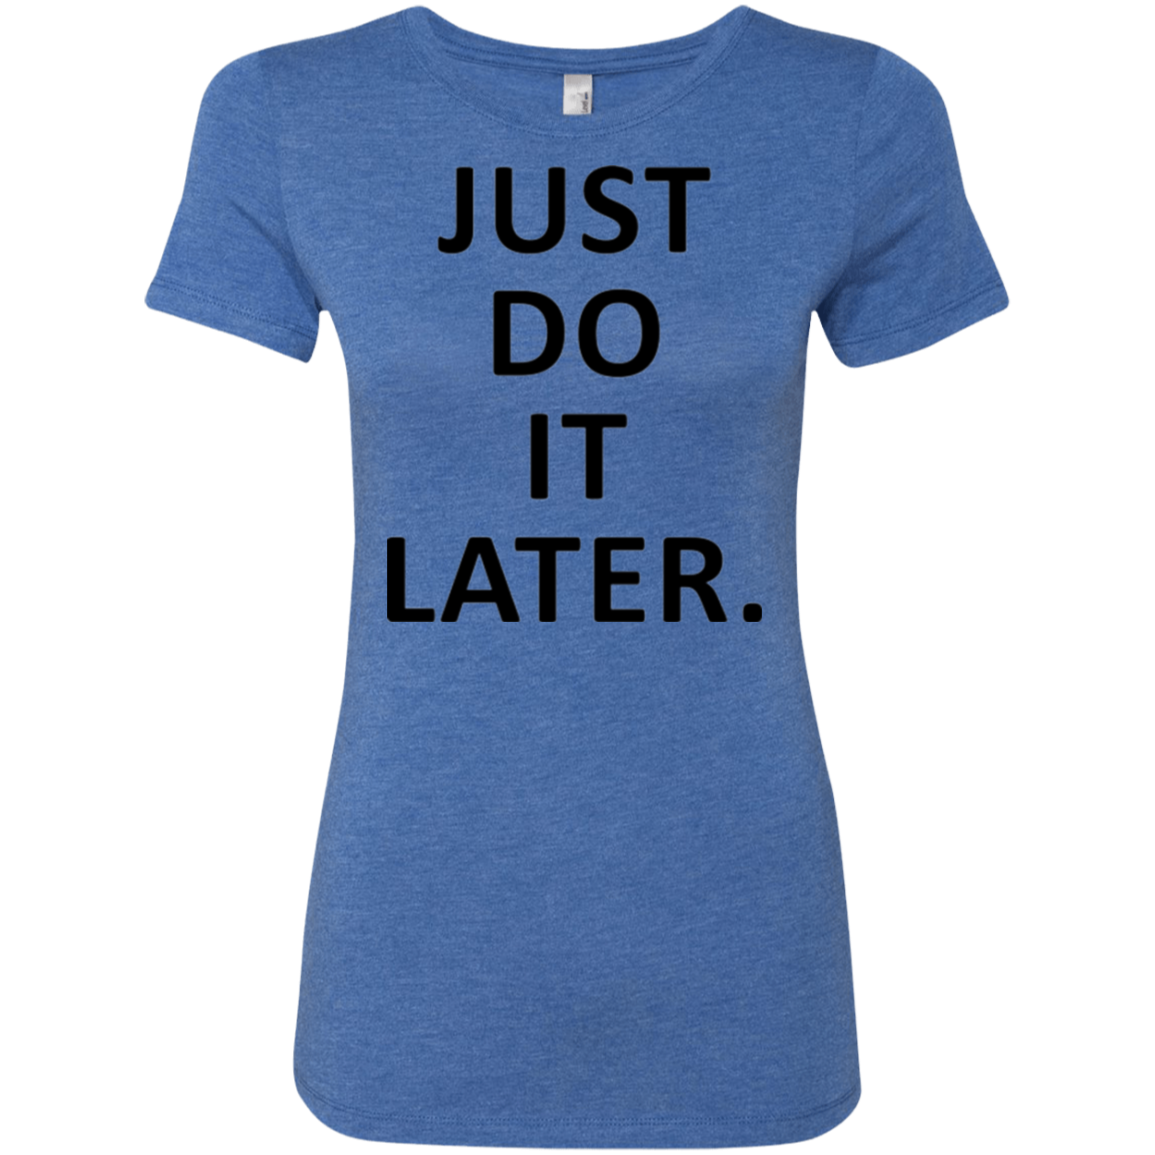 Just Do it Later Women's Classic Tee - Trendy Tees